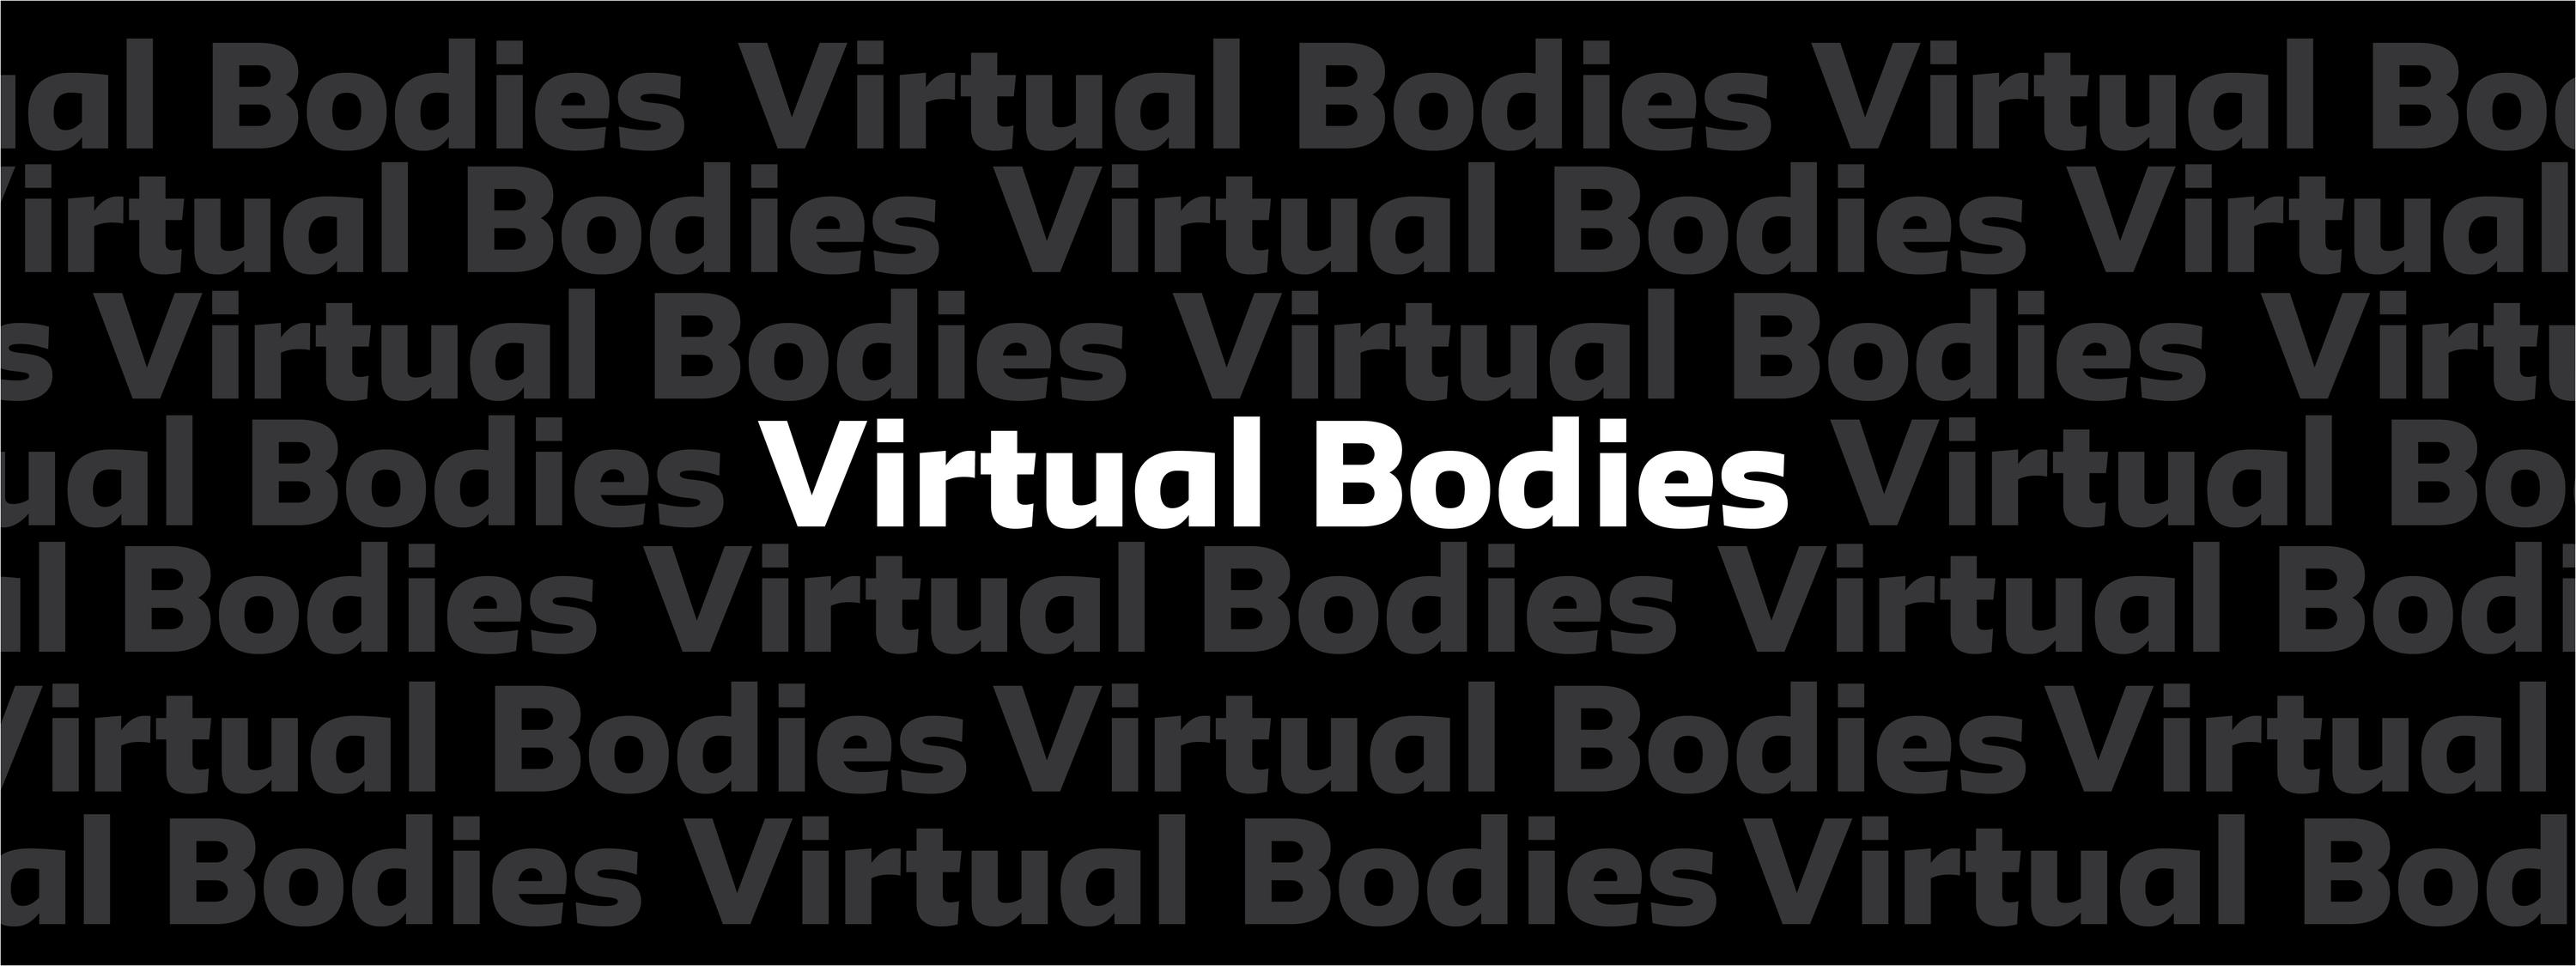 ONLINE | Virtual Bodies: Artist & Curator Talks, Dialogues, and Performances